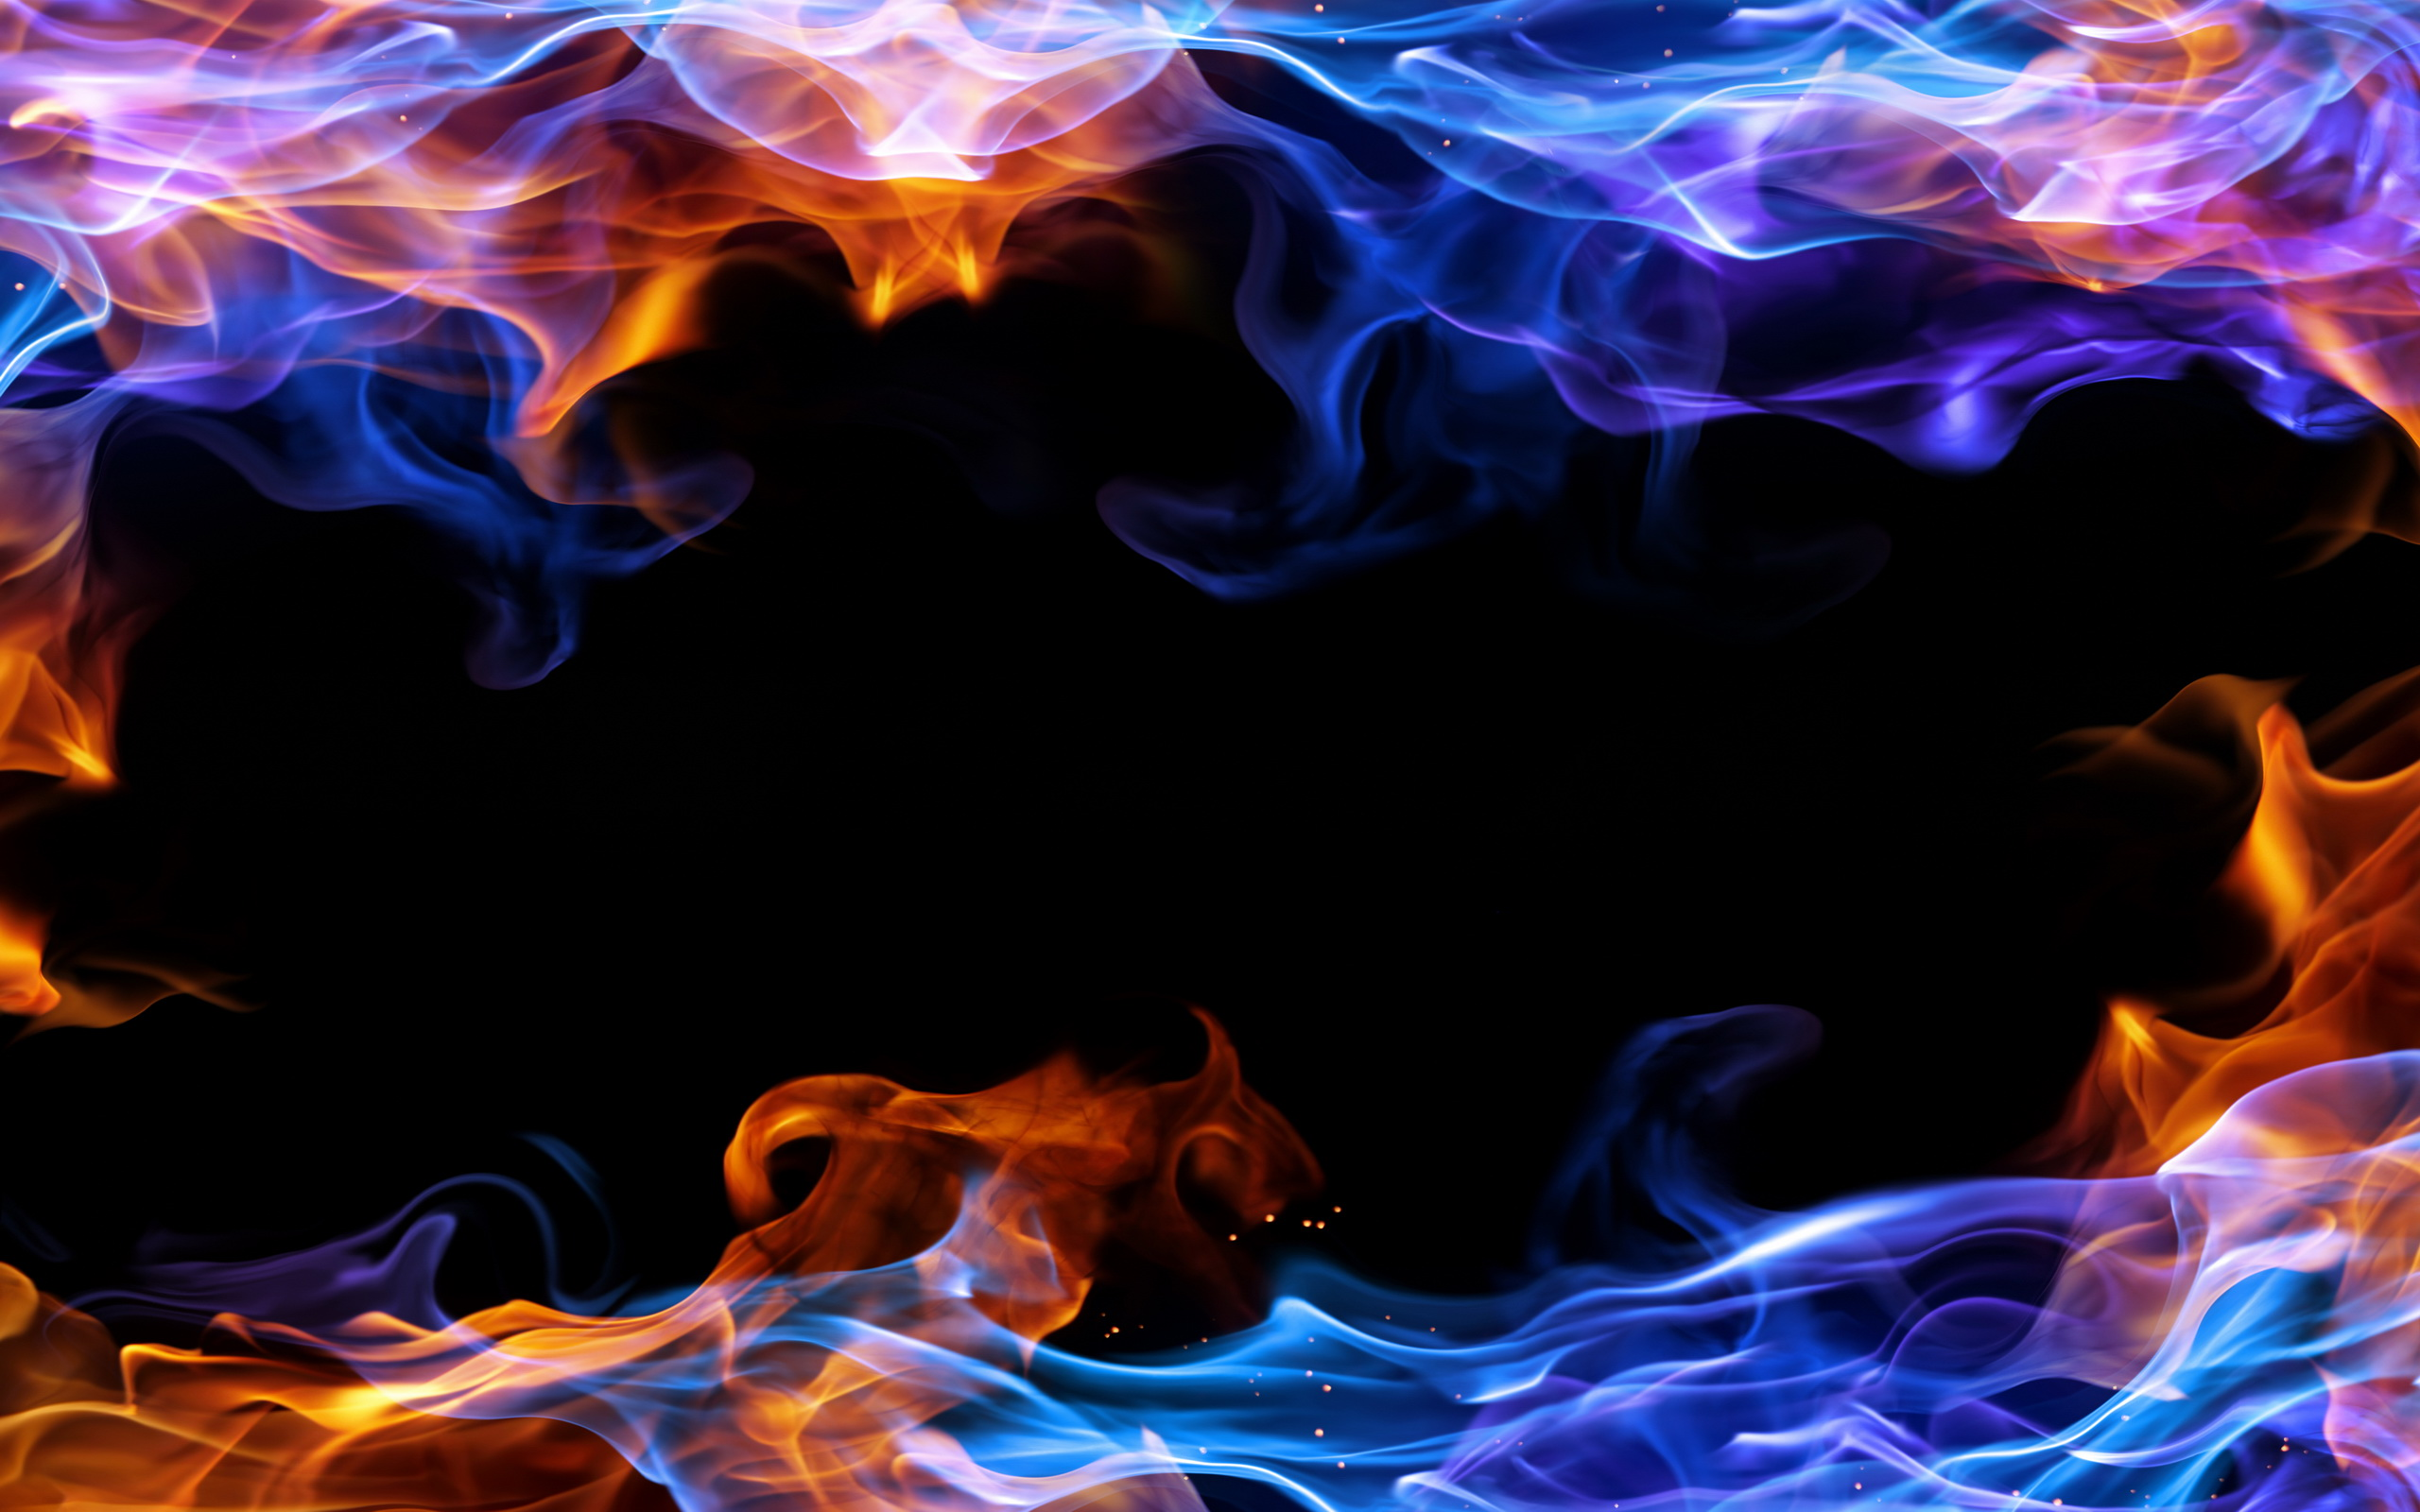 Free Download Fire Full Hd Wallpaper And Background 2560x1600 Id437601 2560x1600 For Your Desktop Mobile Tablet Explore 77 Fire Backgrounds Wallpaper For Kindle Fire Hdx 7 App Wallpaper For